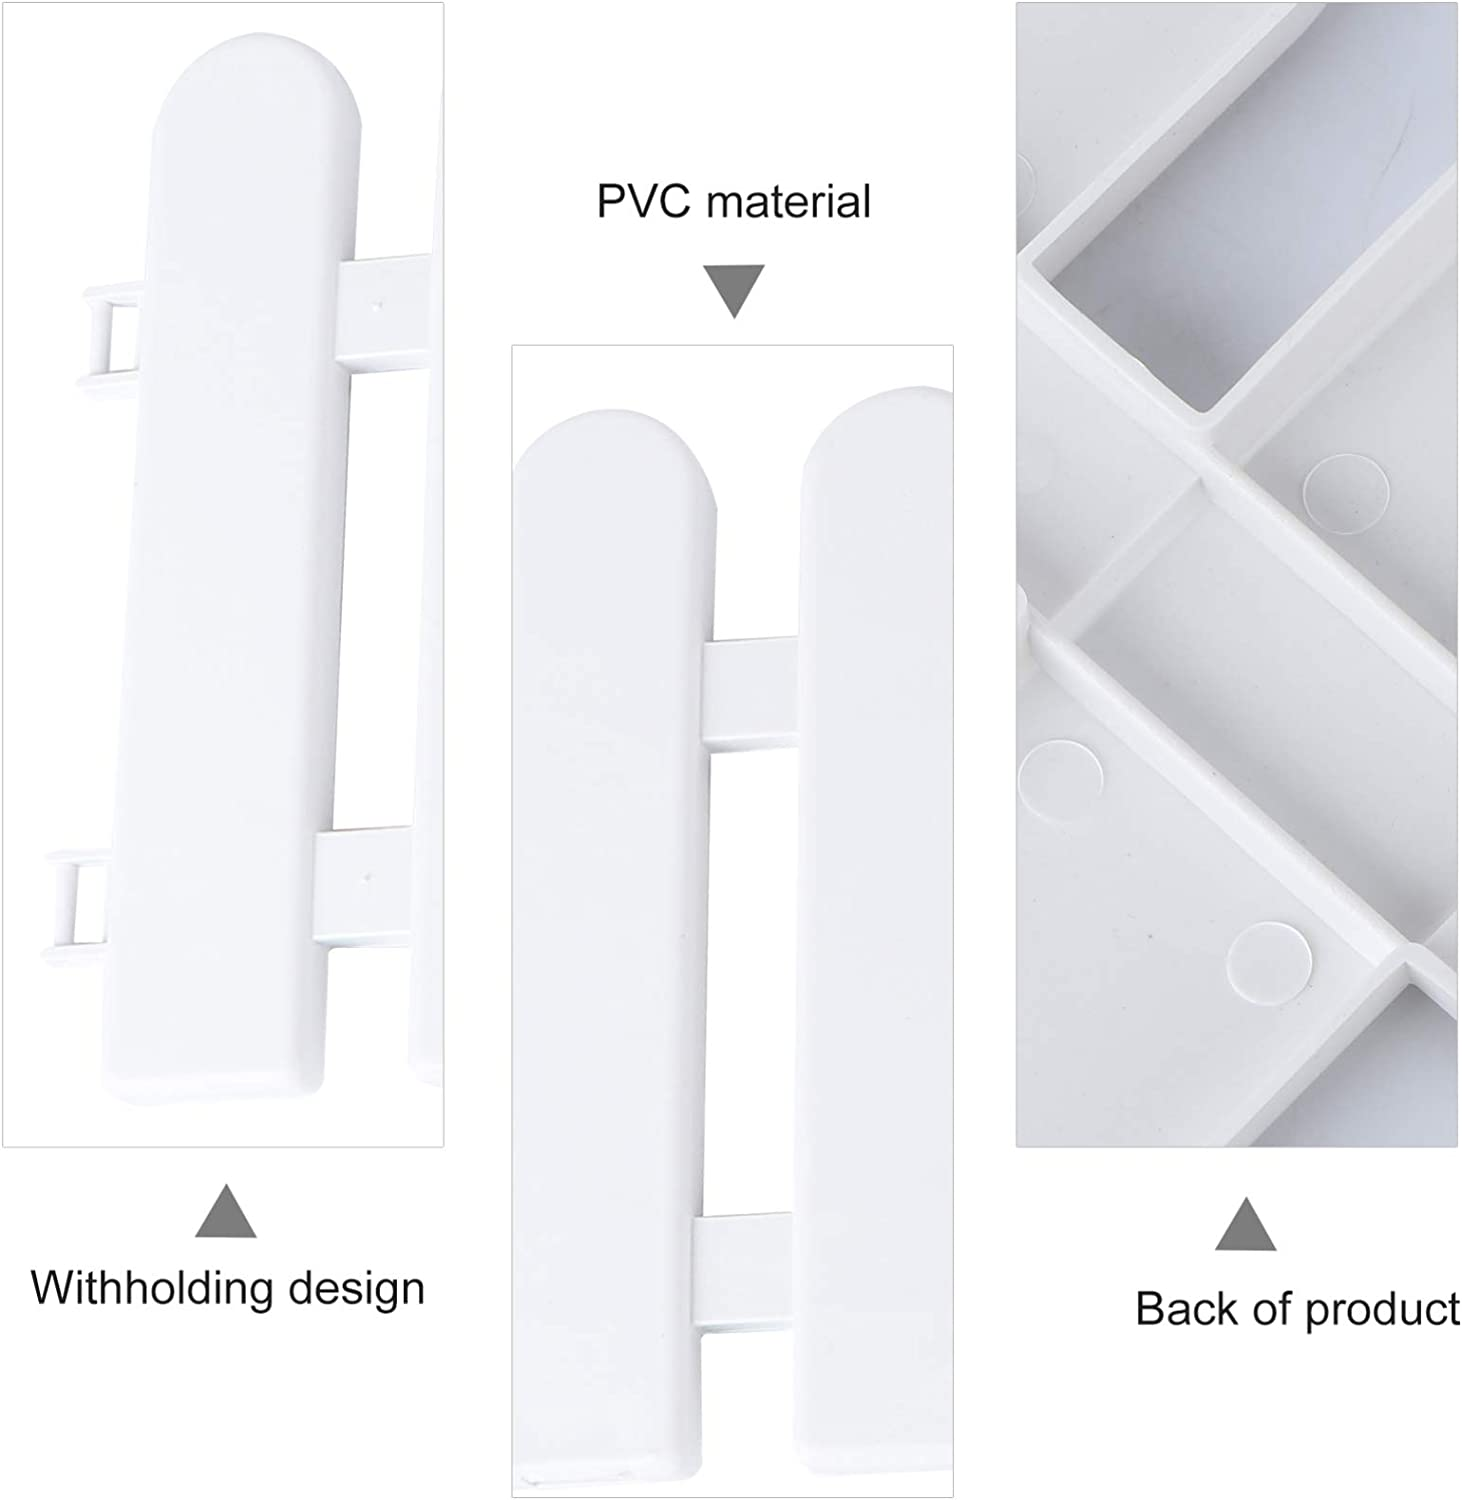 TOPBATHY 5PCS Fashion Durable Safe Pratical Useful Fence Family Supplies Garden Crawl Garden Enclosure Picket Fence White